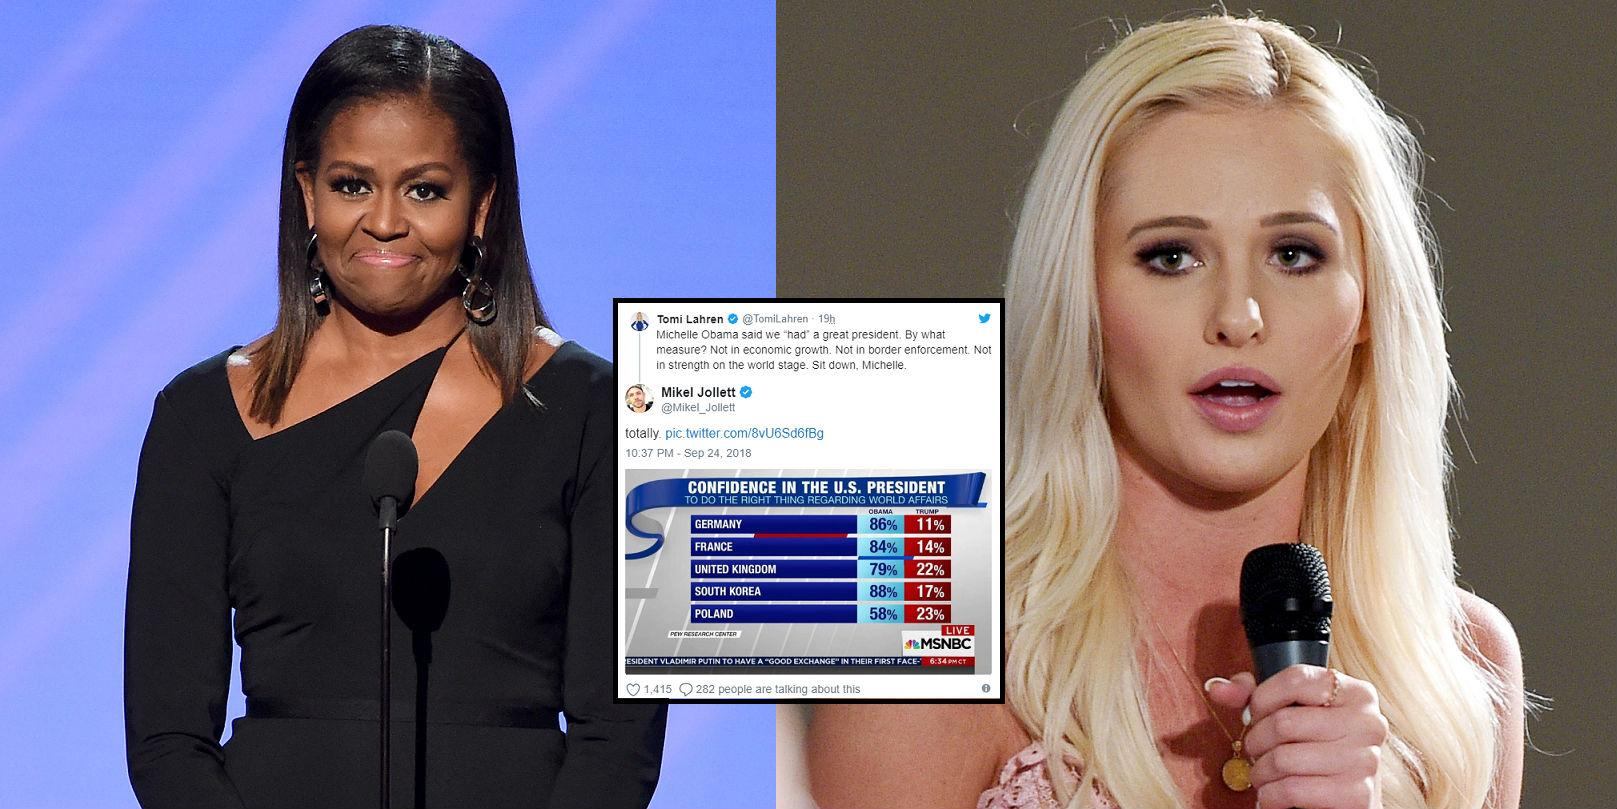 Tomi Lahren told Michelle Obama to 'sit down'. The internet responded  accordingly